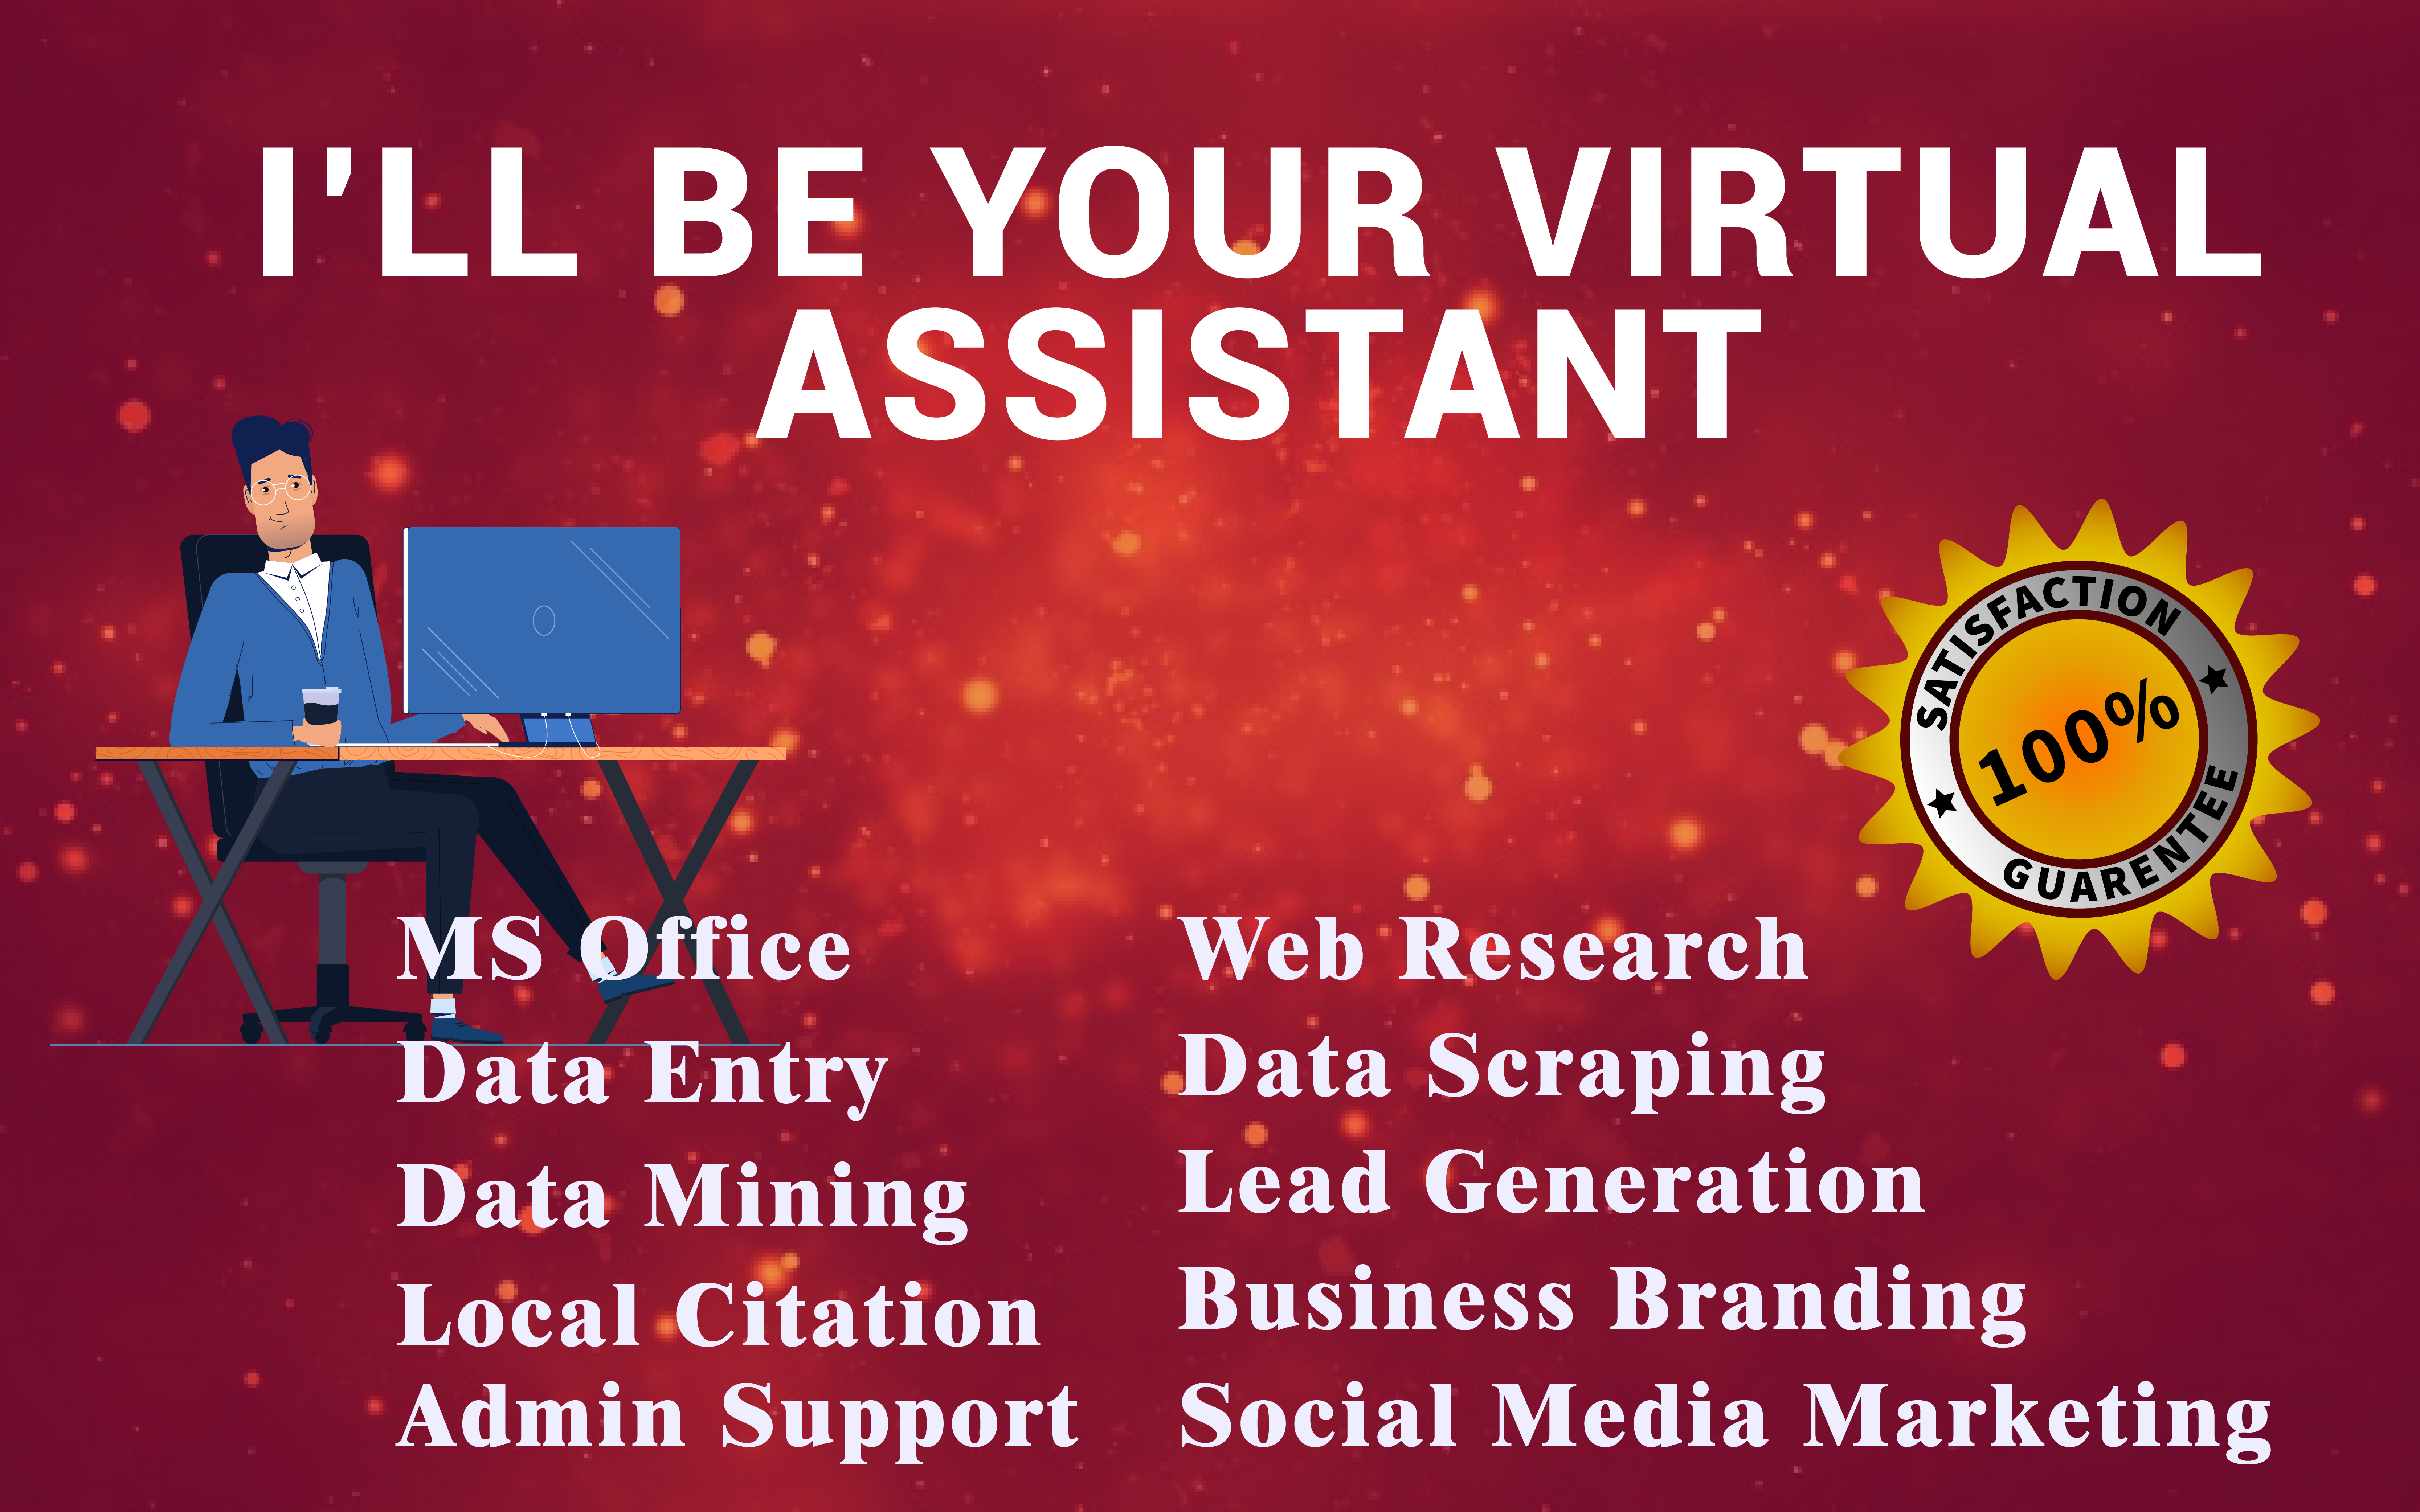 I Will Be Your Next Virtual Assistant For Your Future Work Or Other Purpose